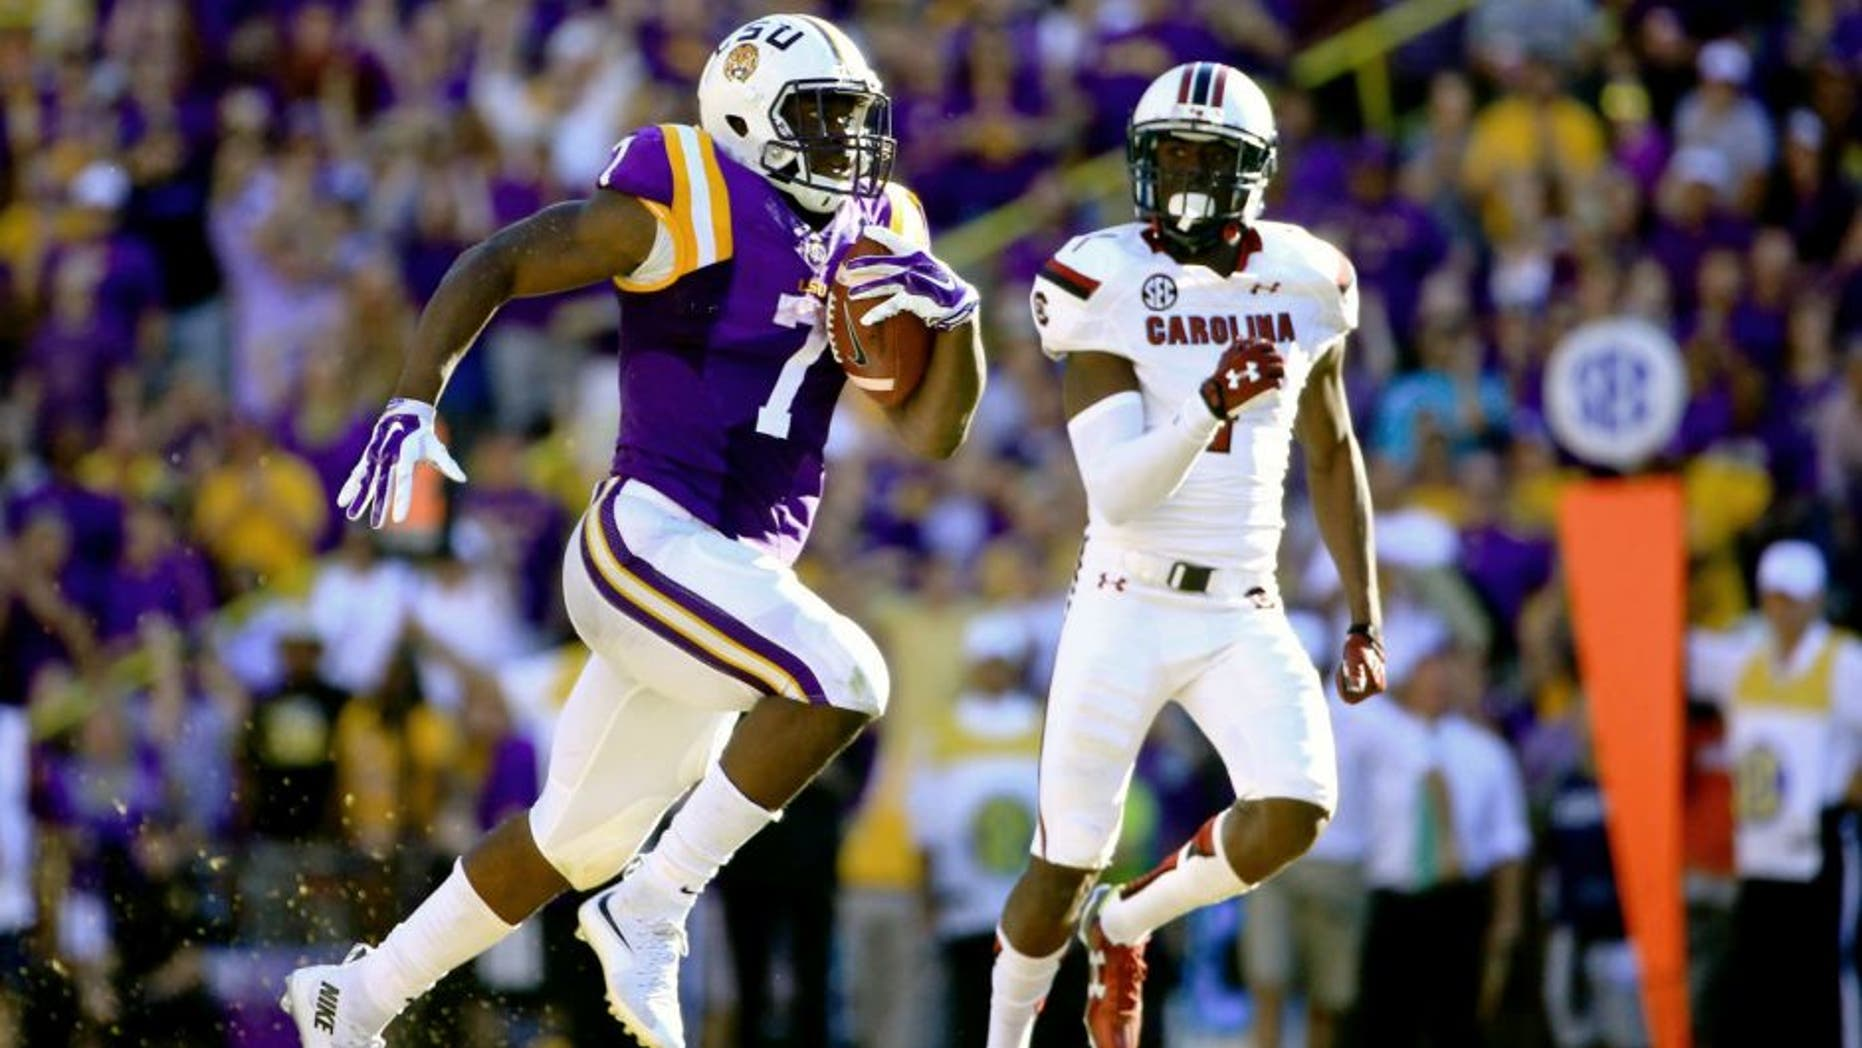 Oct 10, 2015; Baton Rouge, LA, USA; LSU Tigers running back Leonard Fournette (7) runs for an 87-yard touchdown during the third quarter of a game against the South Carolina Gamecocks at Tiger Stadium. Mandatory Credit: Derick E. Hingle-USA TODAY Sports